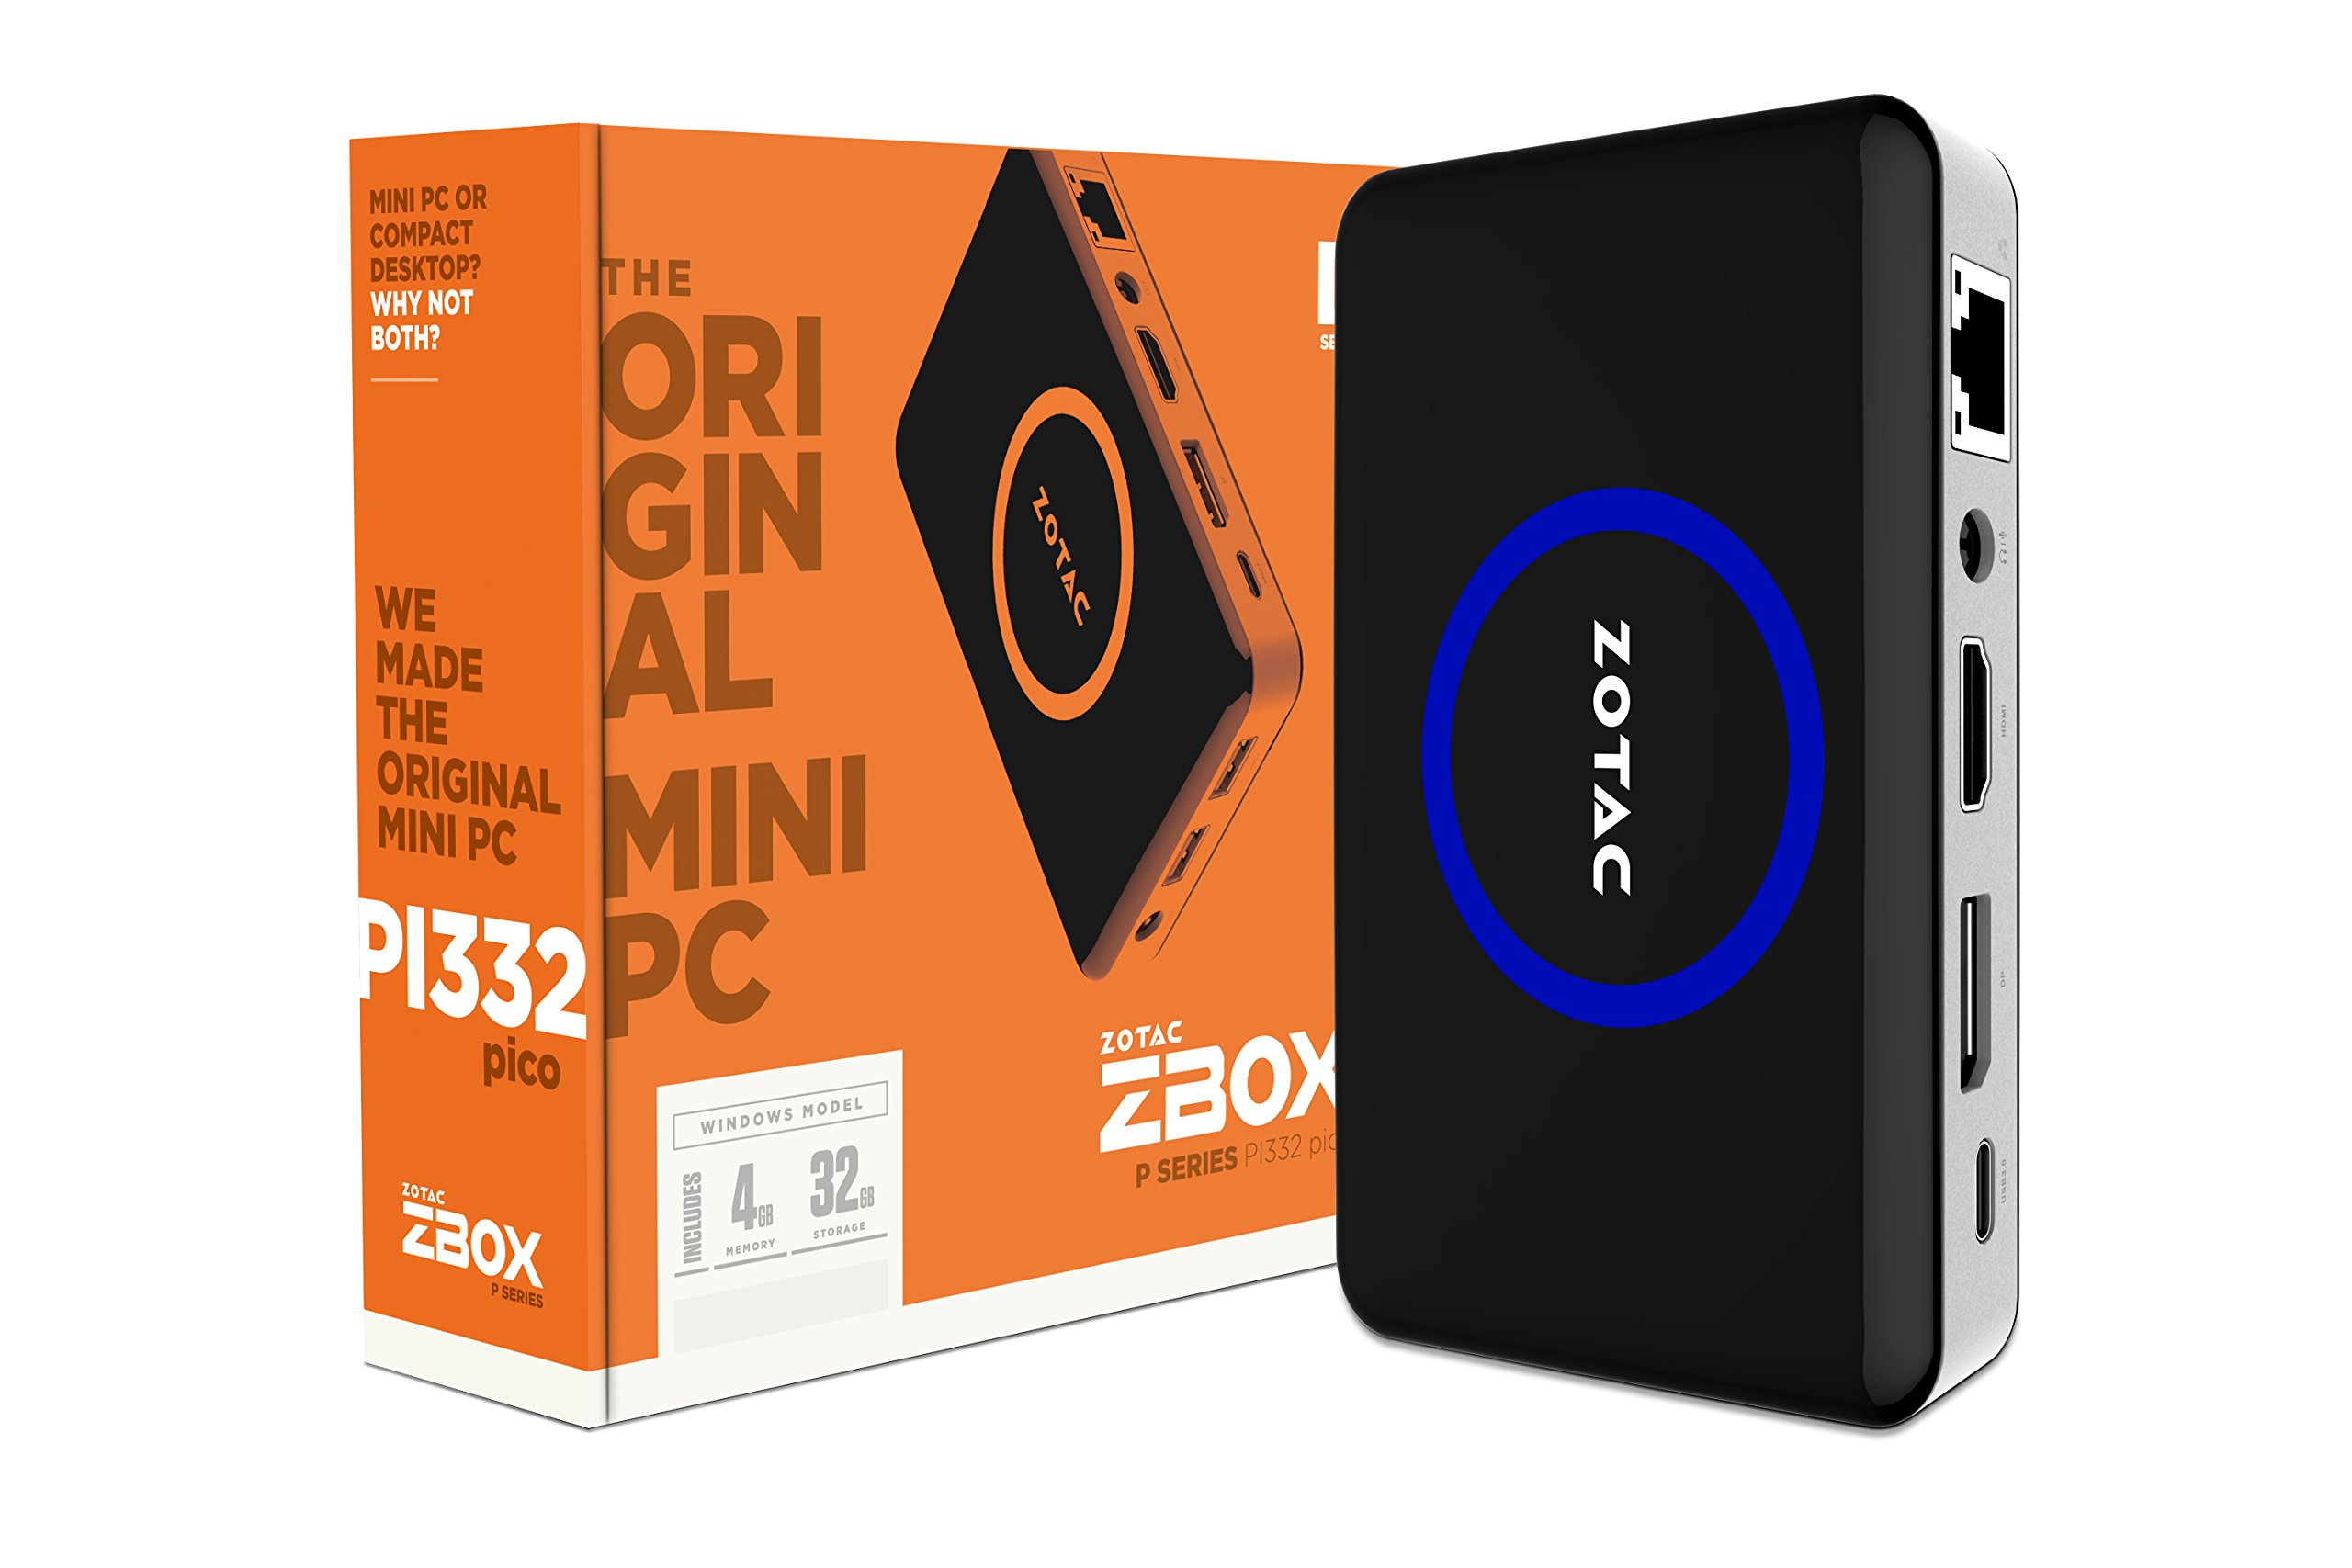 ZOTAC PICO ZBOX-PI332-W2B Intel Atom x5-Z8500 1.44GHz 4GB LPDDR3 32GB eMMC Intel HD Graphics Windows 10 Home Mini PC by ZOTAC